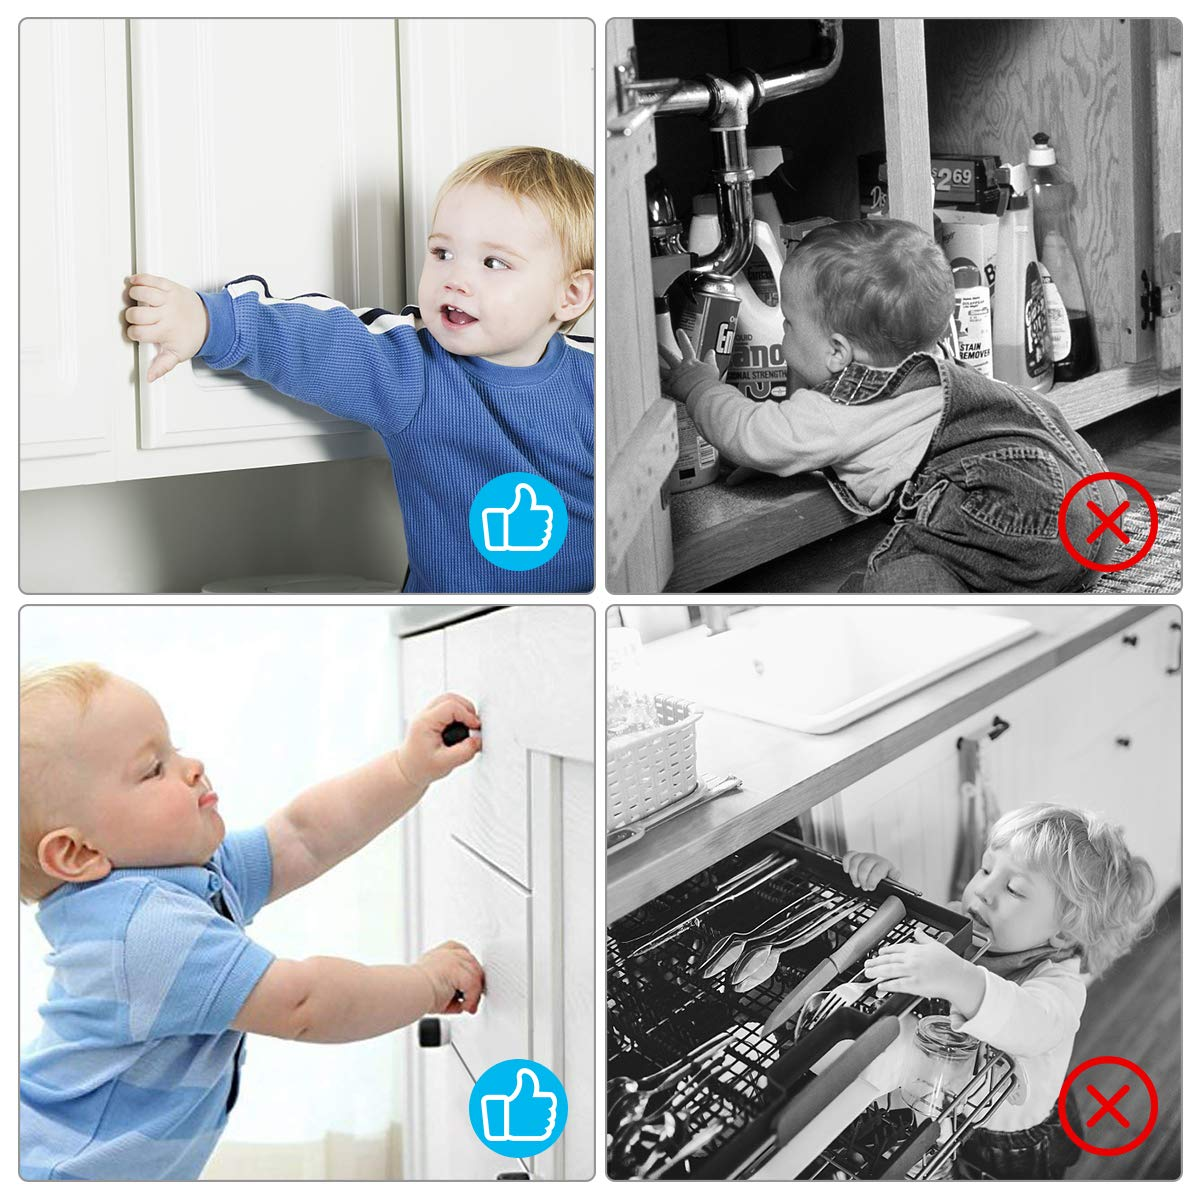 and No Tools Invisible Design with No Magnetic Keys to Lose 3M Drilling or Measuring Required LIUMY Baby Proofing Cabinets Lock and Drawers Latches//Easy Adhesive 12 Pack Child Cabinet Locks